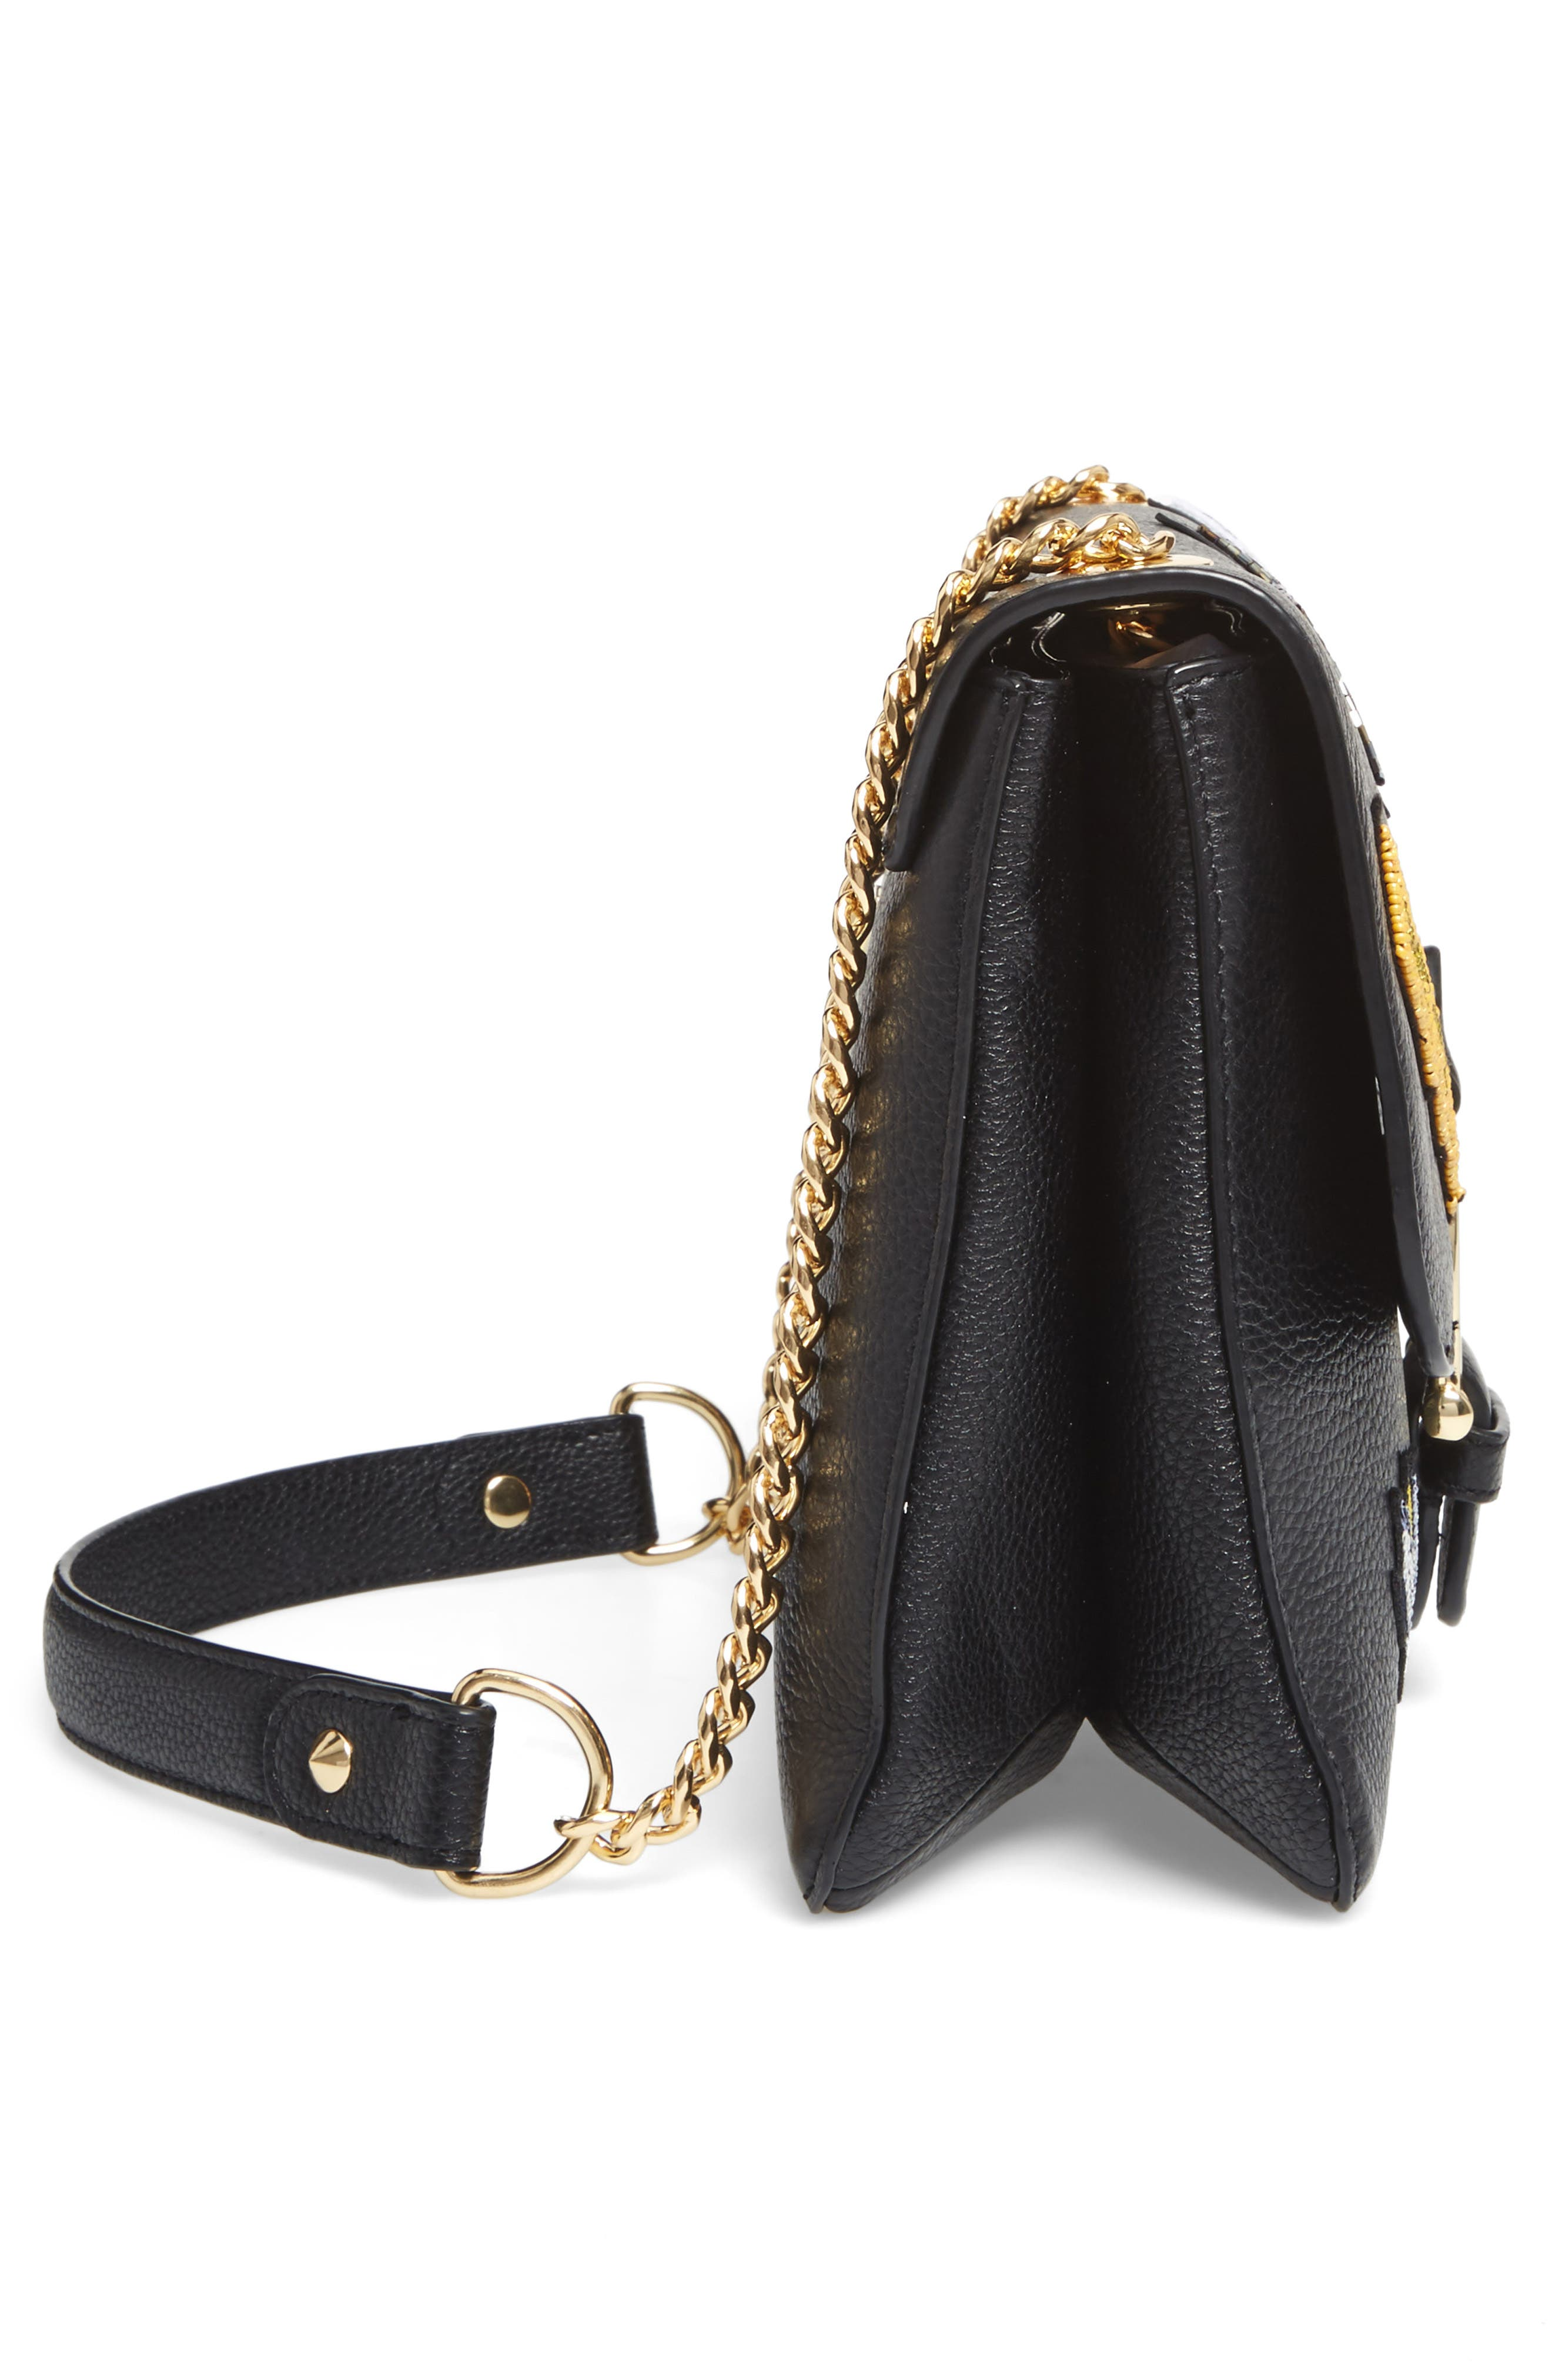 Asher Shoulder Bag,                             Alternate thumbnail 5, color,                             001